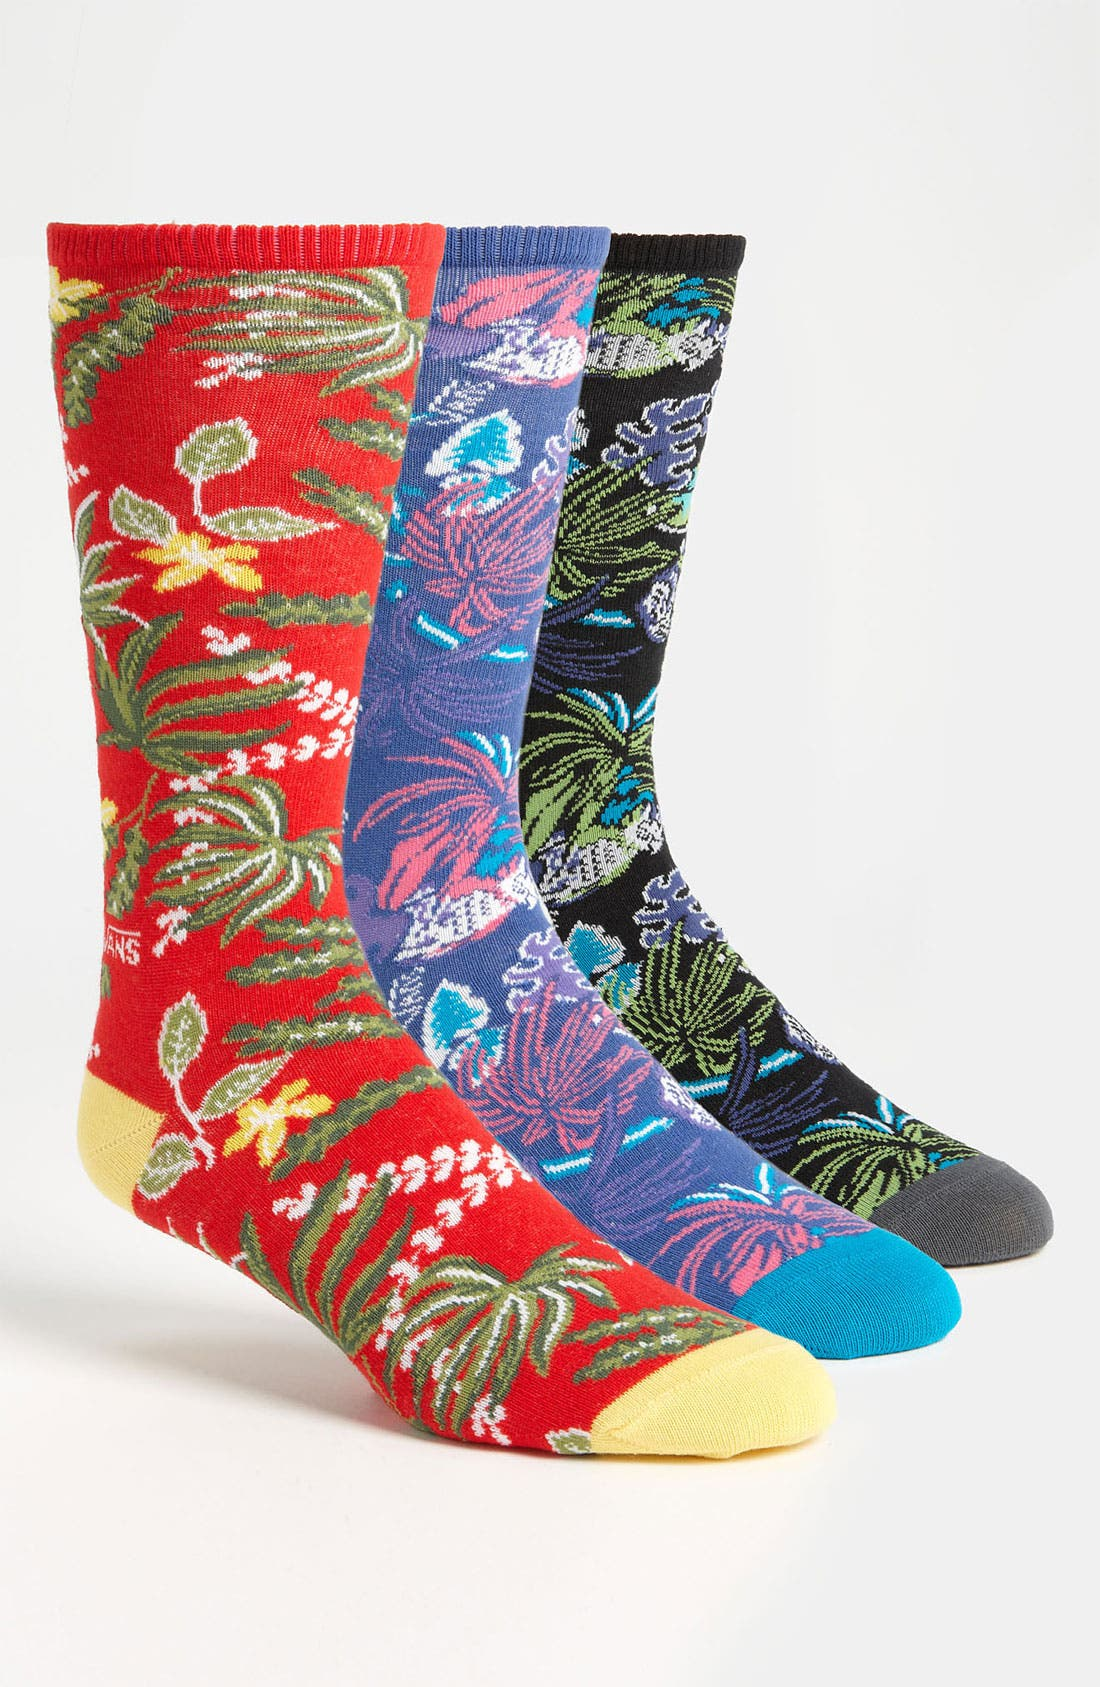 Alternate Image 1 Selected - Vans 'Broloha' Crew Socks (3-Pack)